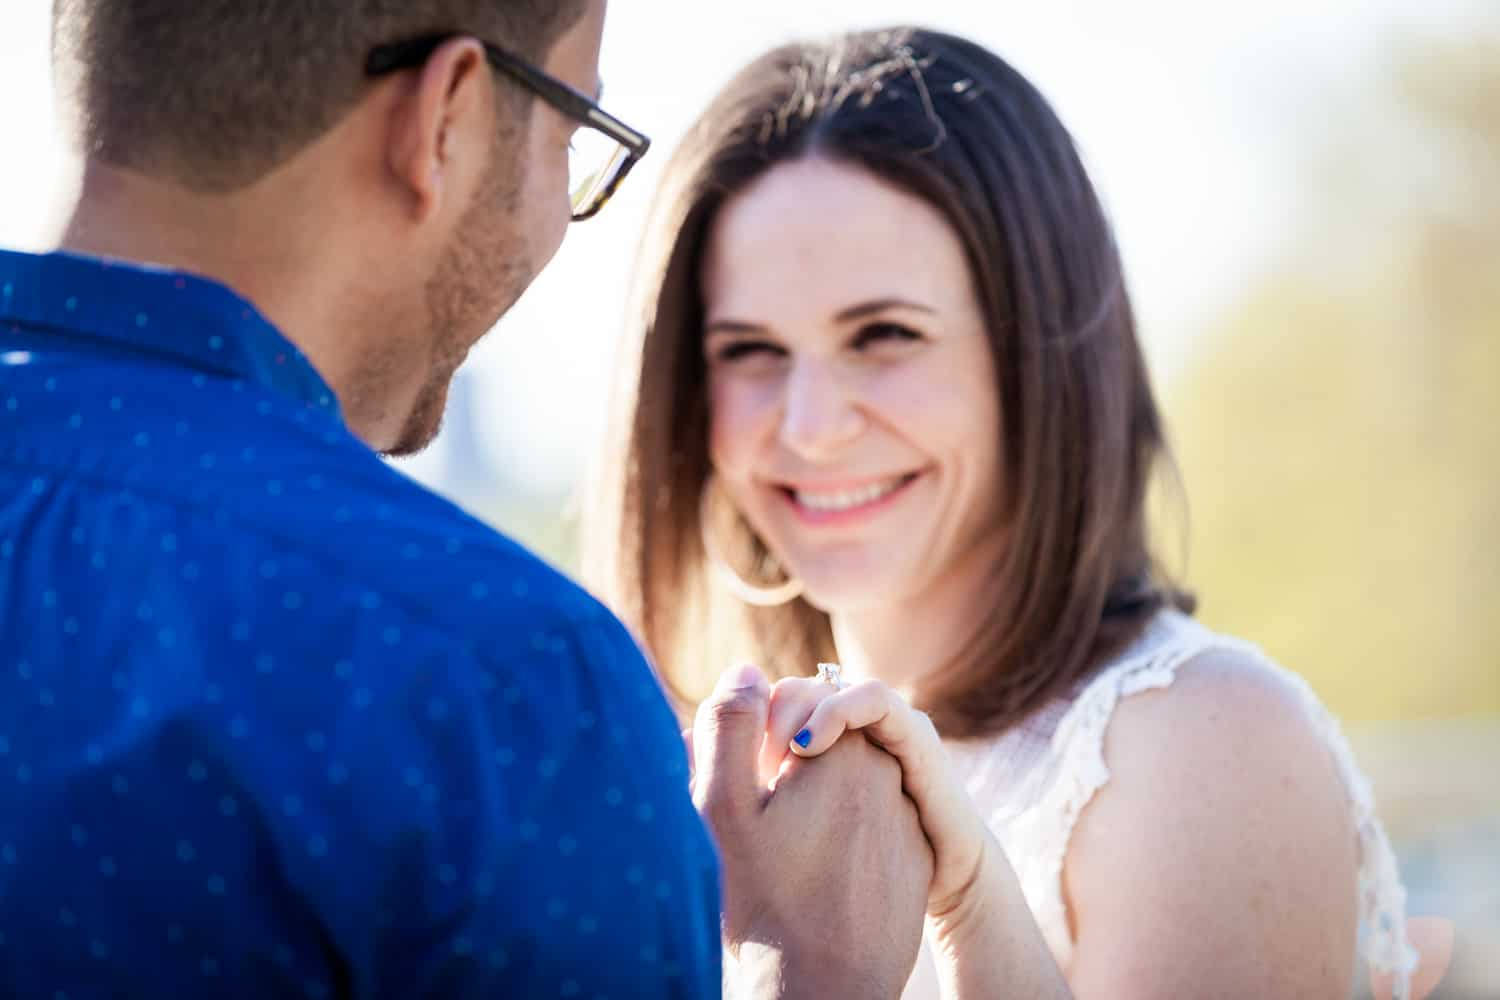 Woman showing engagement ring to man during an Astoria Park engagement shoot